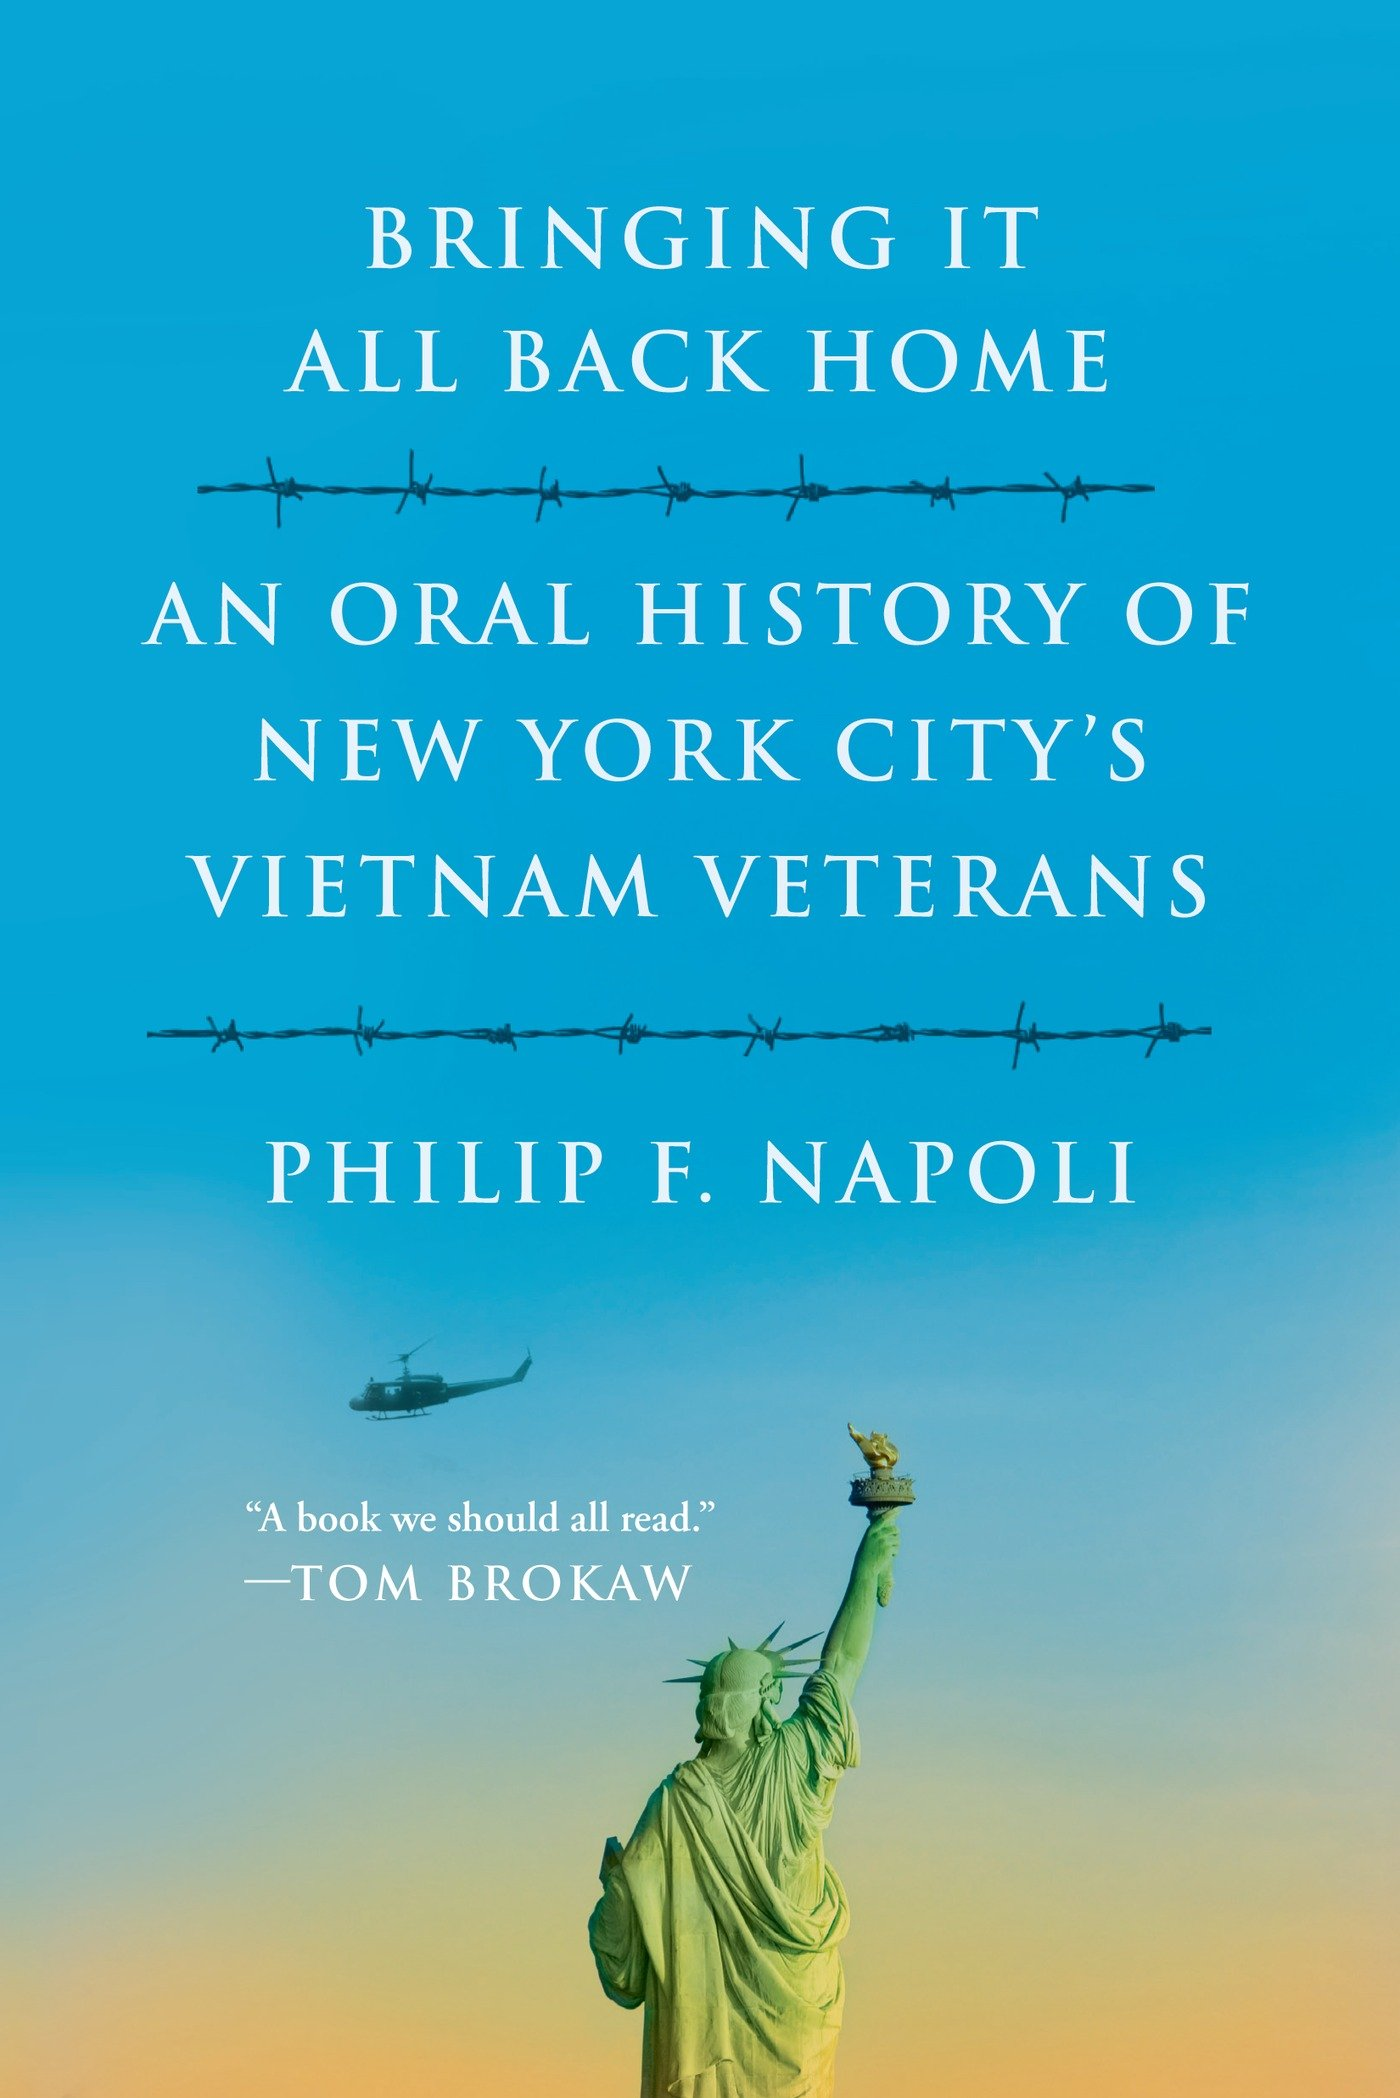 Bringing It All Back Home: An Oral History of New York